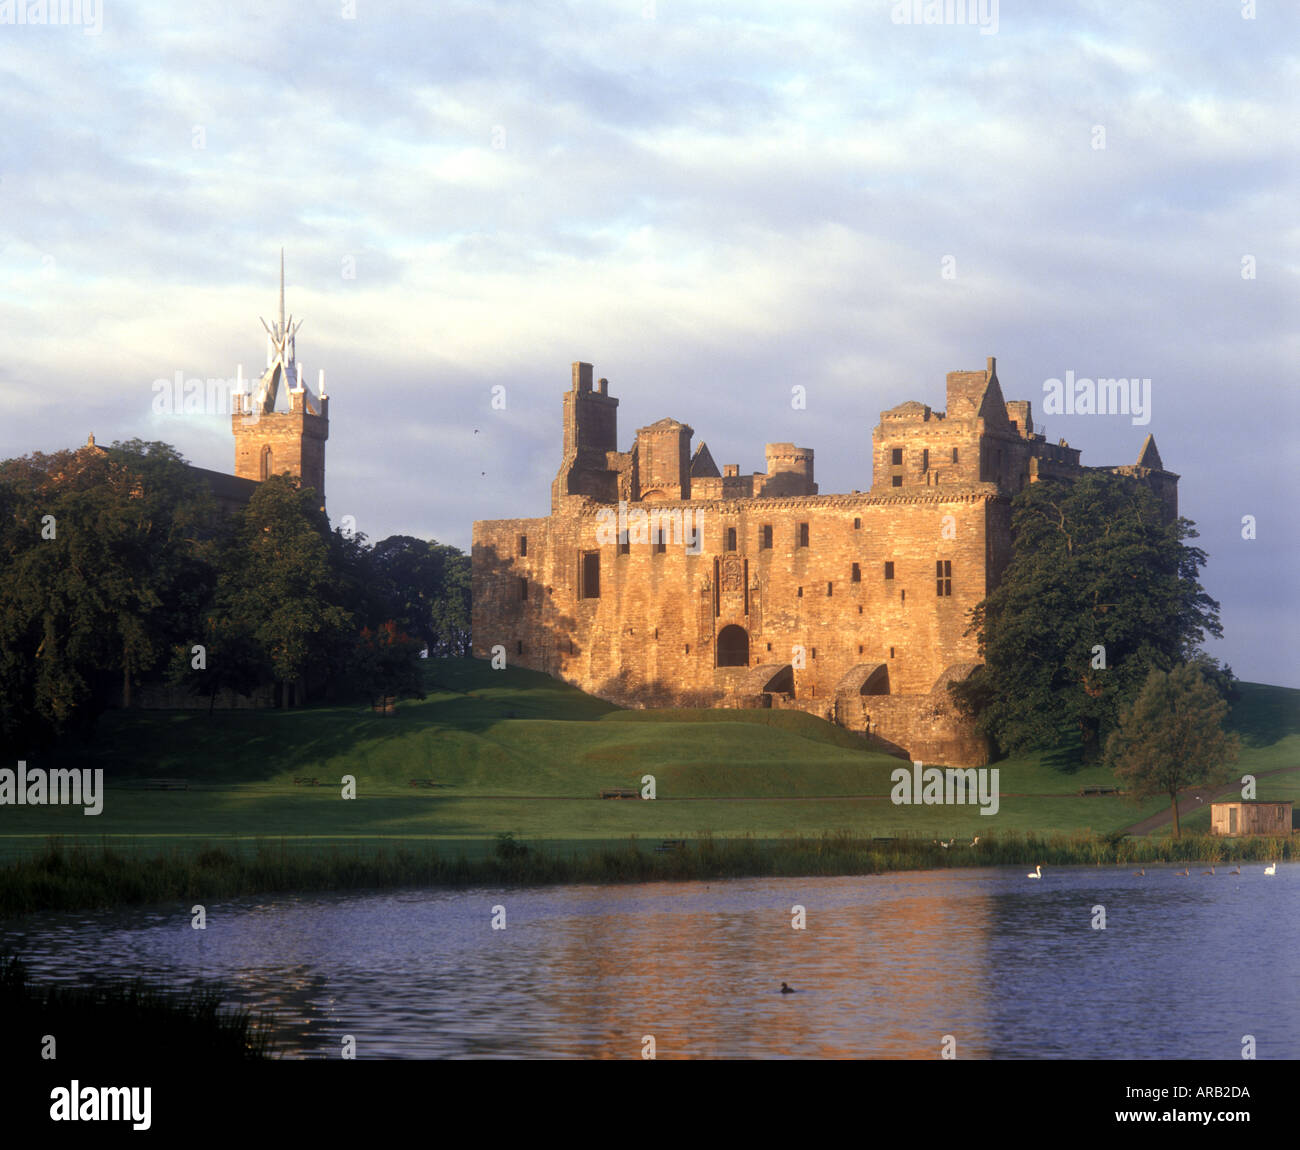 Linlithgow Palace Linlithgow West Lothian Scotland Stock Photo